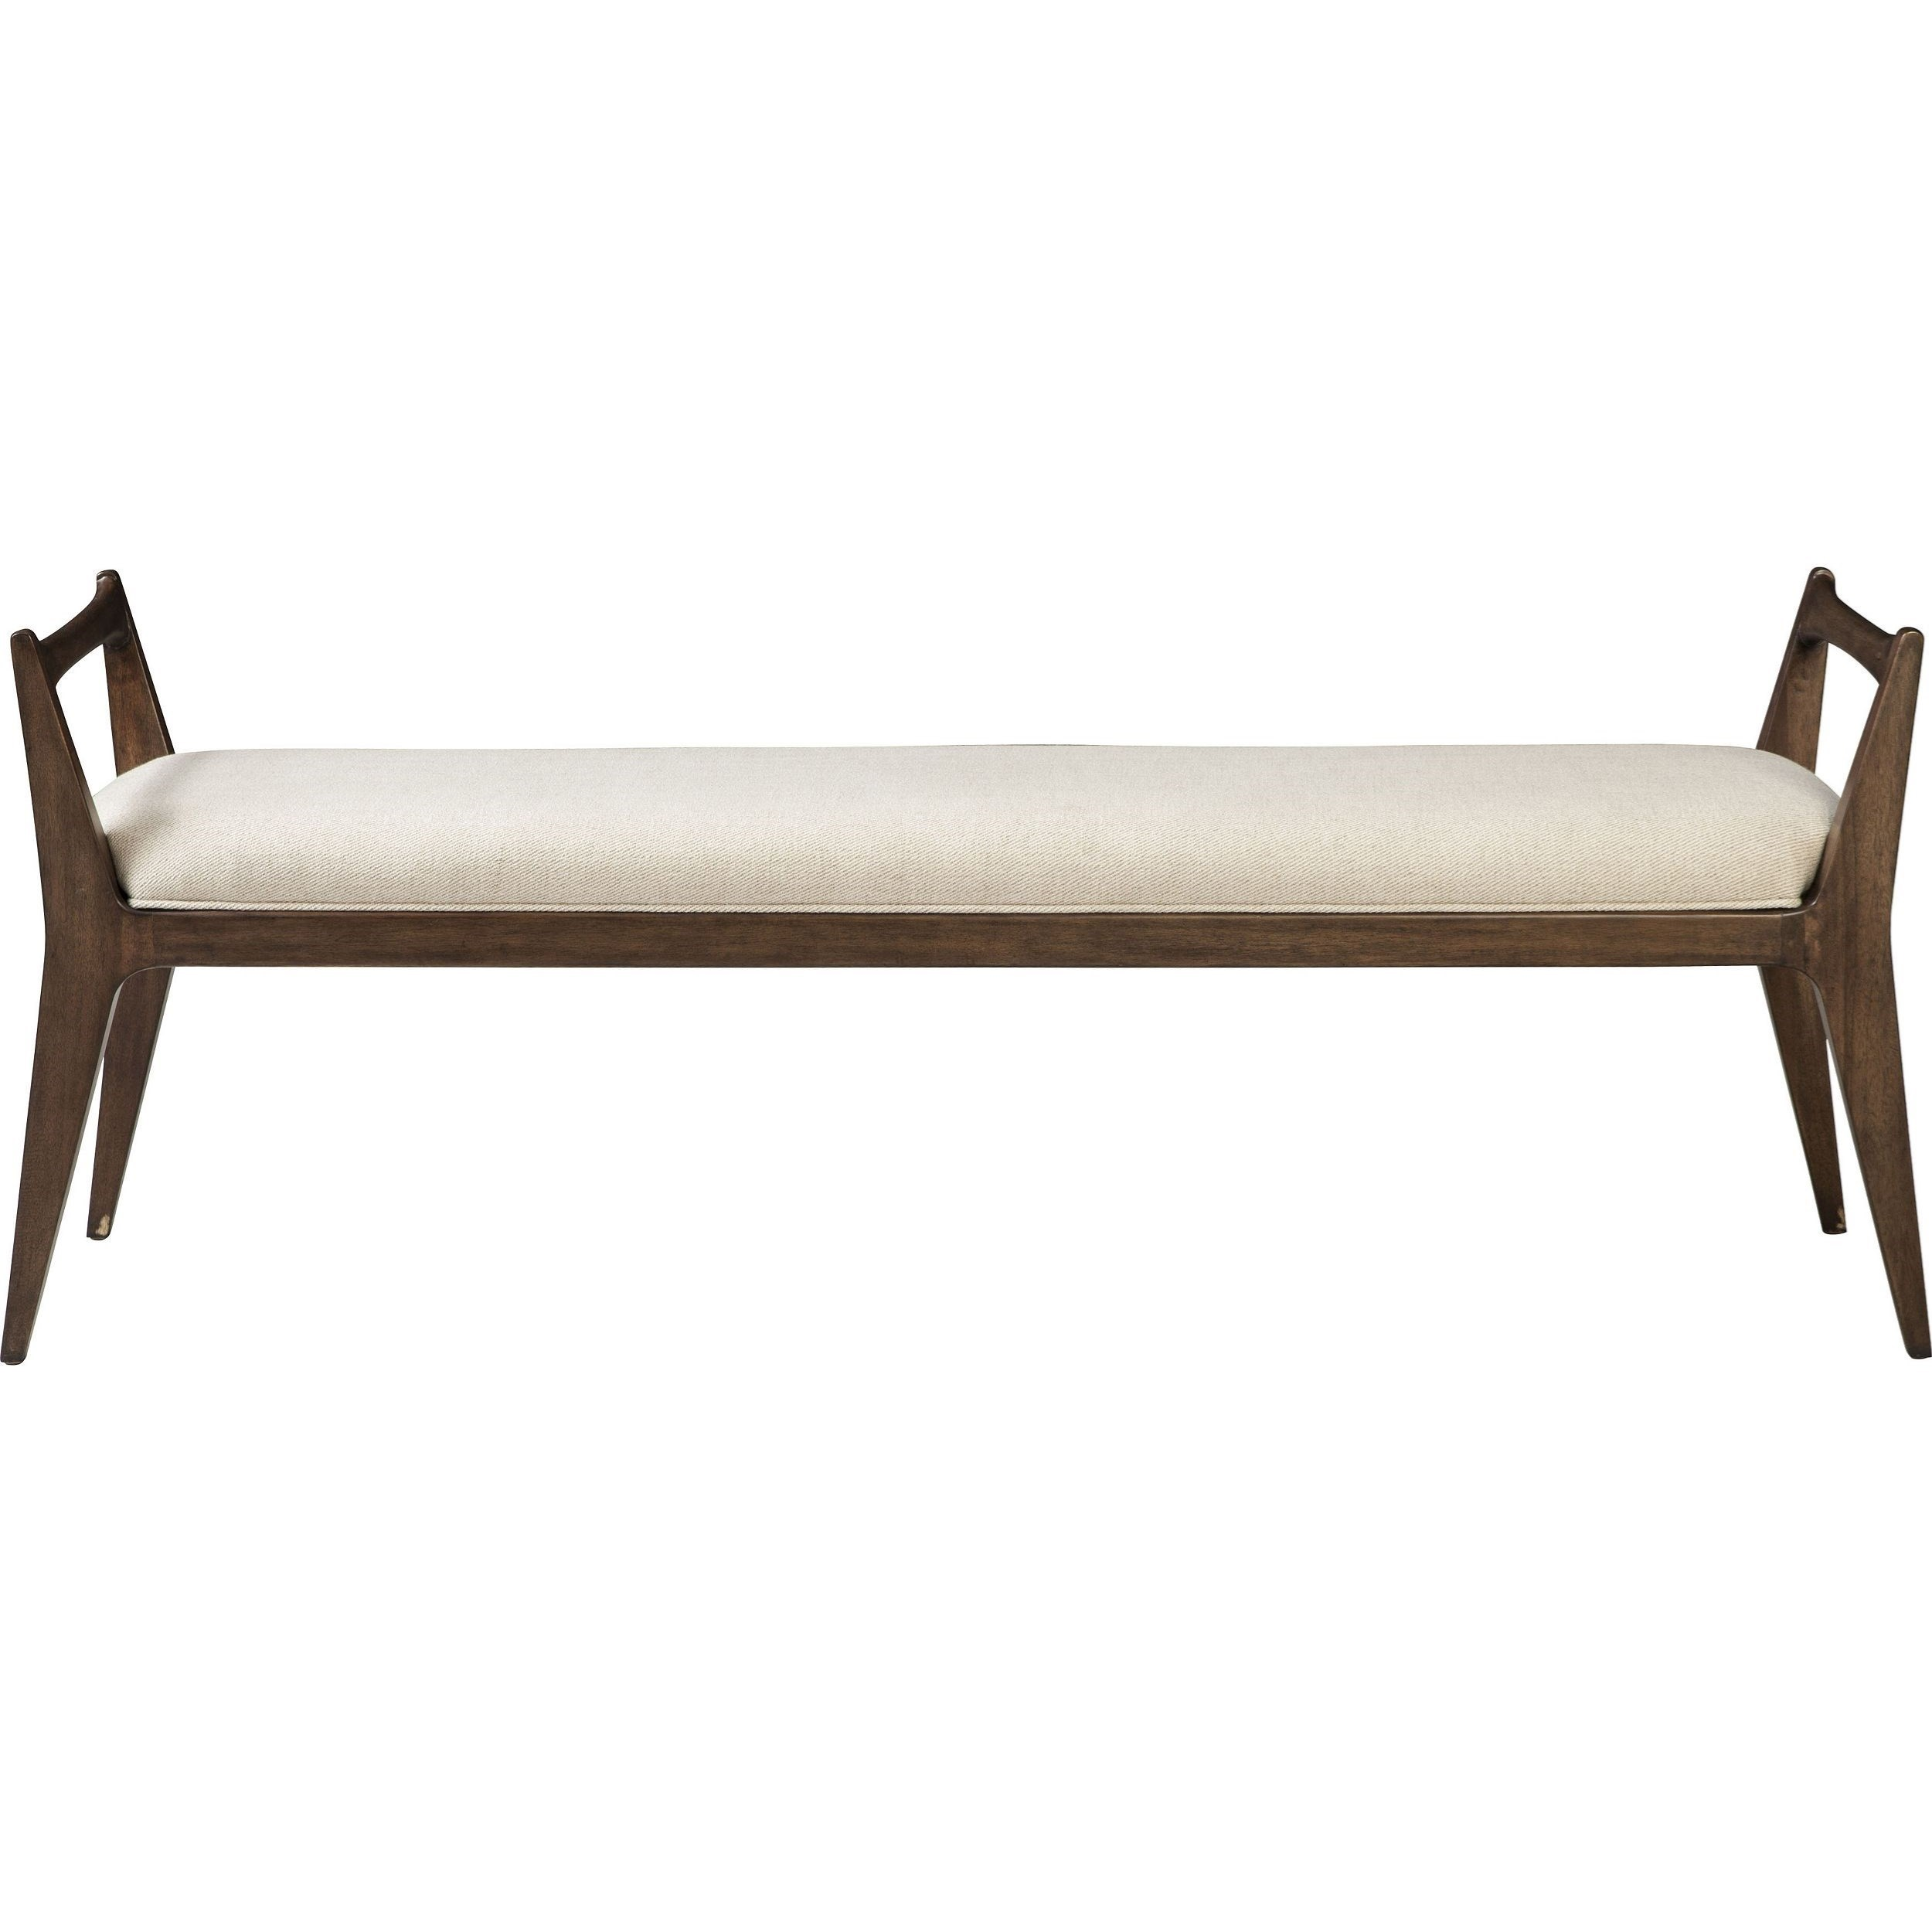 ED Ellen DeGeneres Crafted by Thomasville   Toluca Bench - Item Number: 85811-907